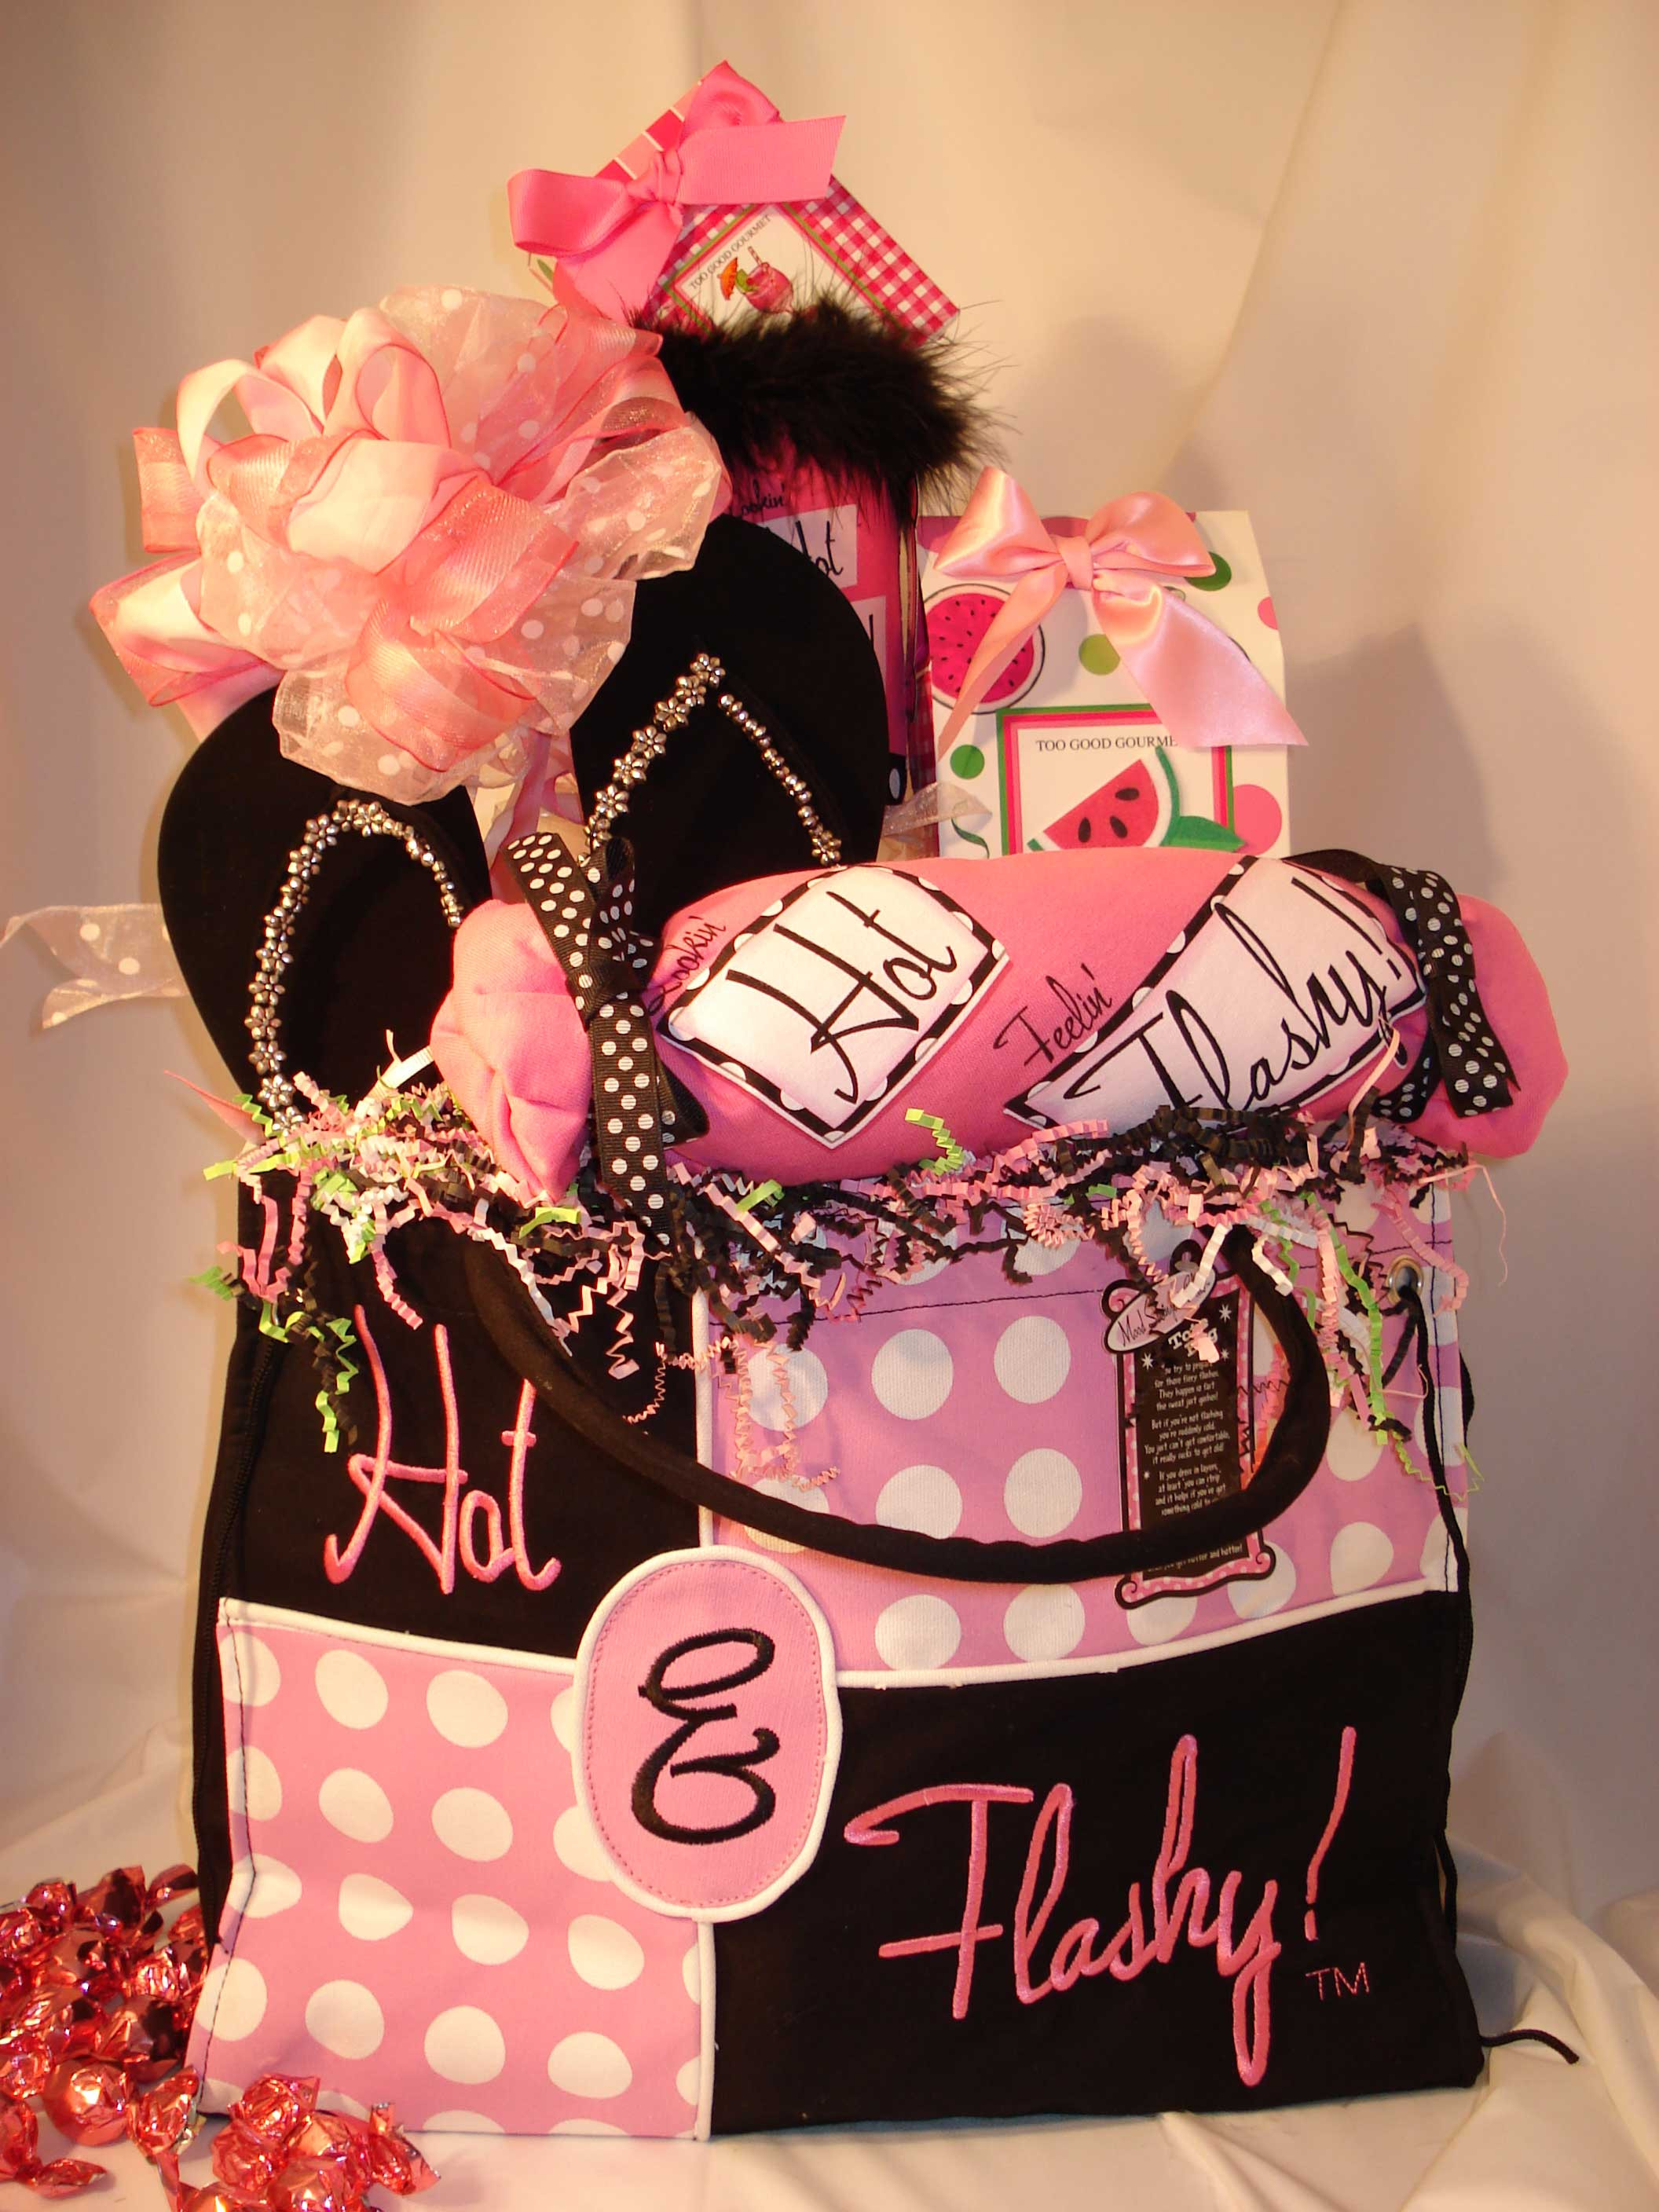 Best ideas about Gift Baskets Ideas . Save or Pin 13 Gift Basket Ideas For Your Great Gifts Women wellness Now.